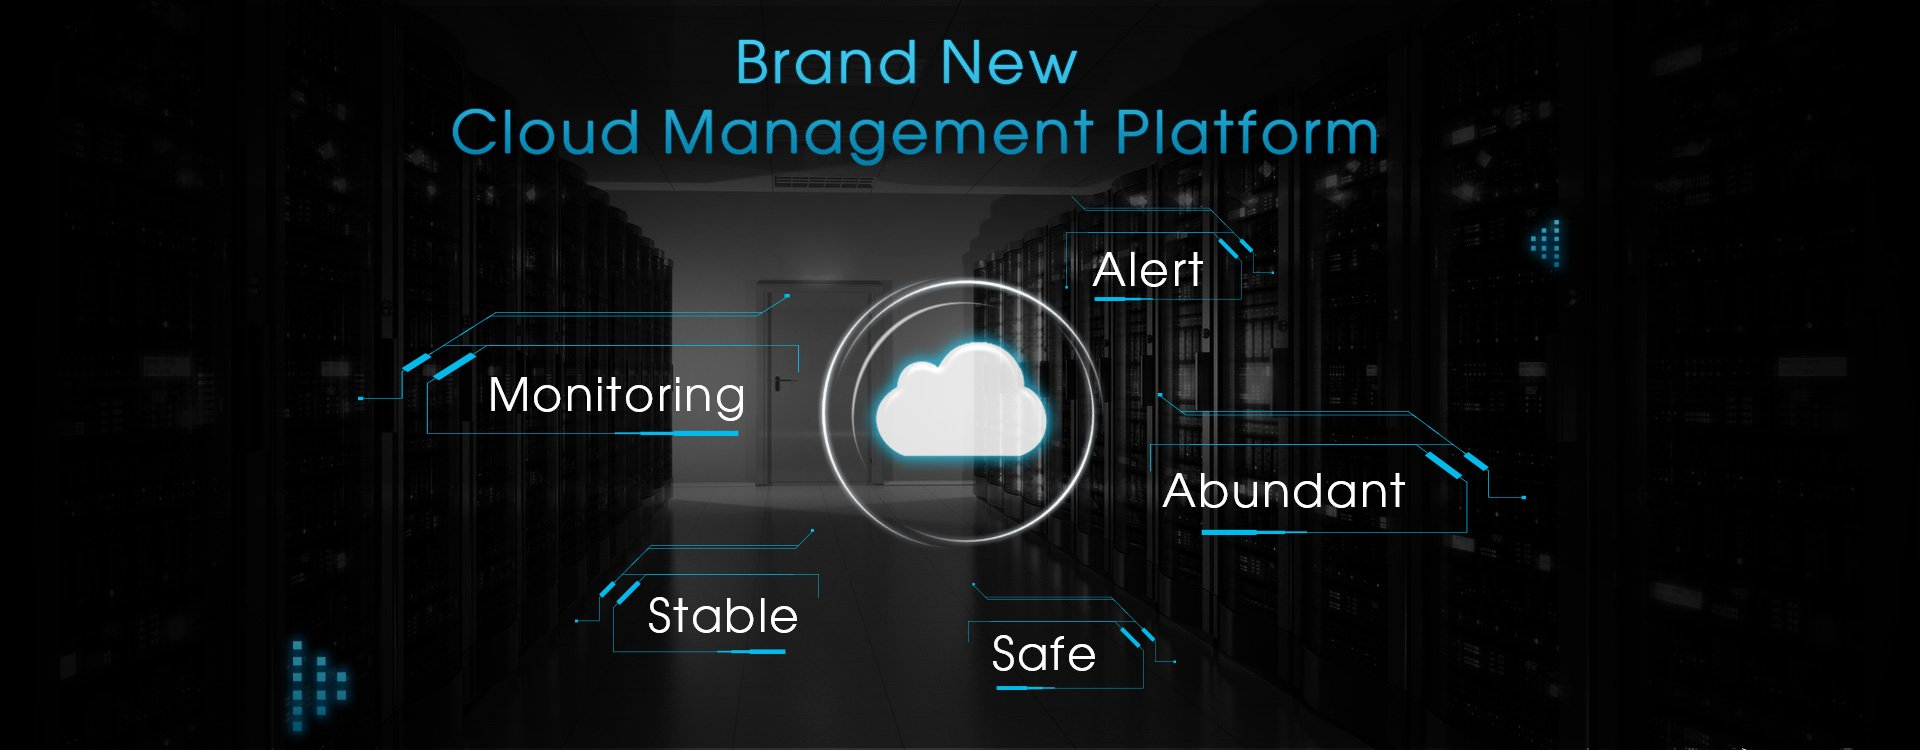 CloudManagementPlatform2.0